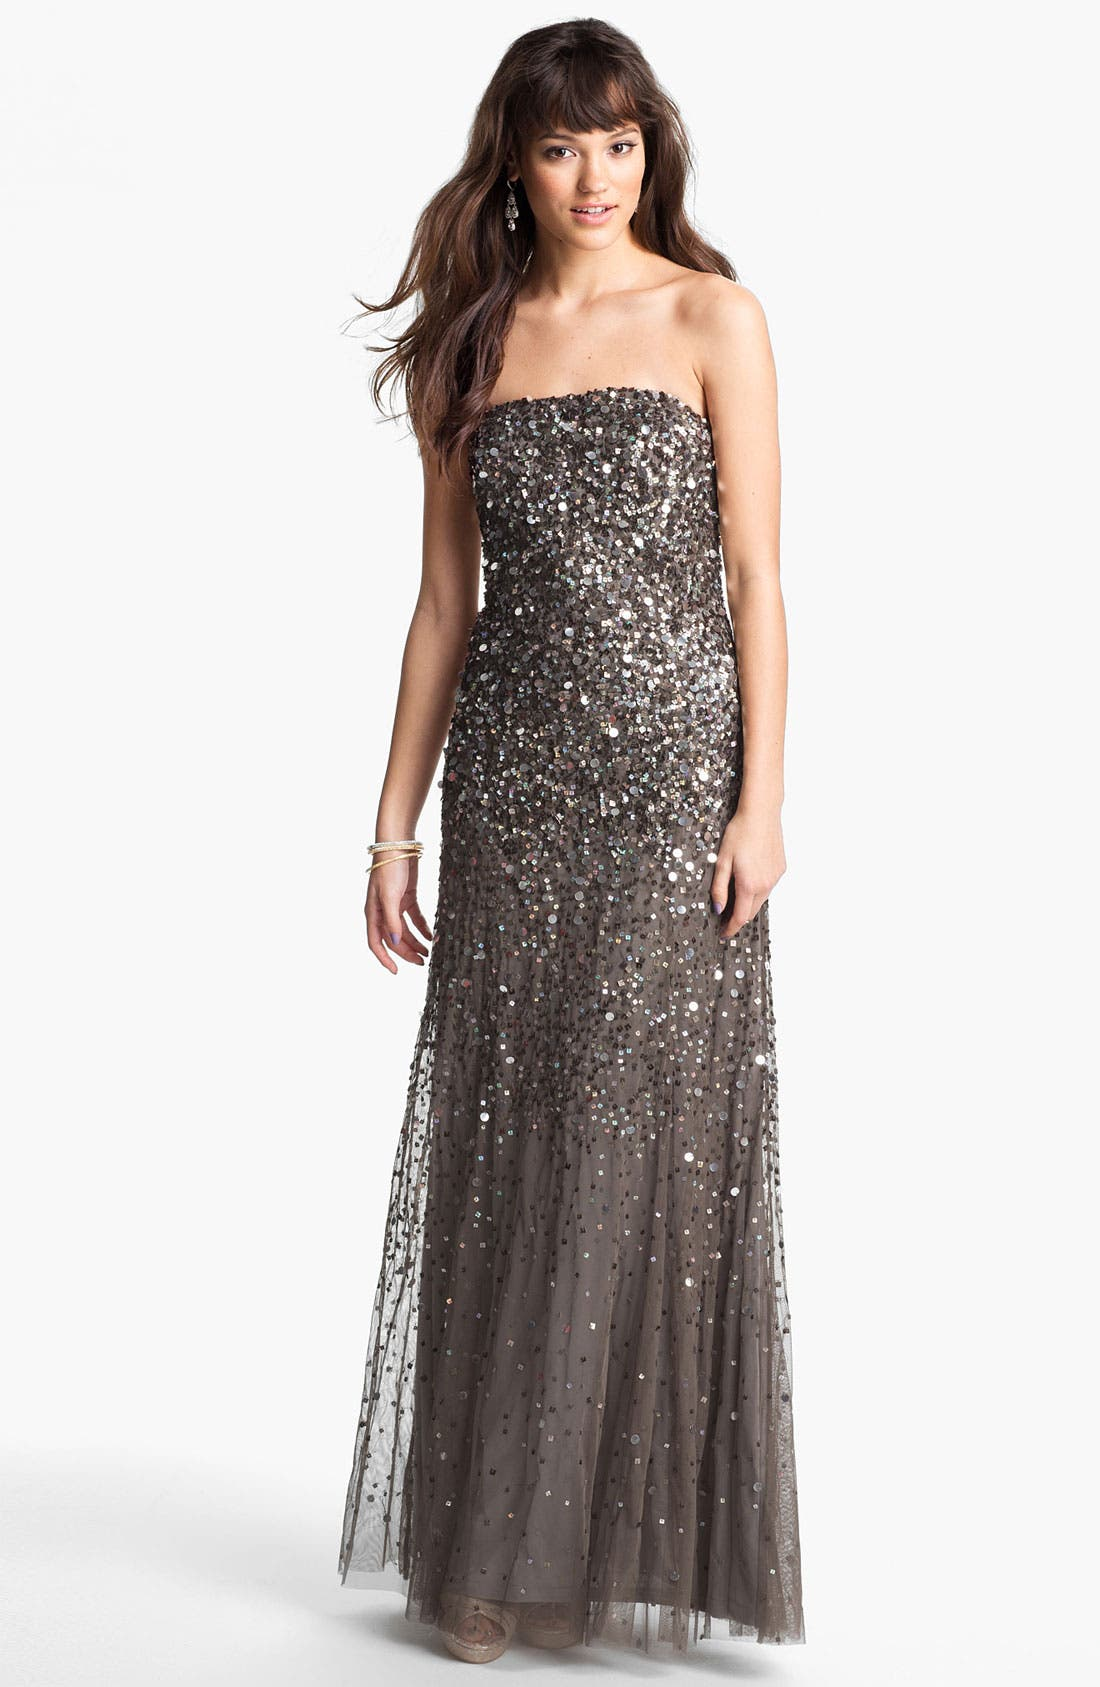 Alternate Image 1 Selected - Adrianna Papell Sequined Strapless Mesh Gown